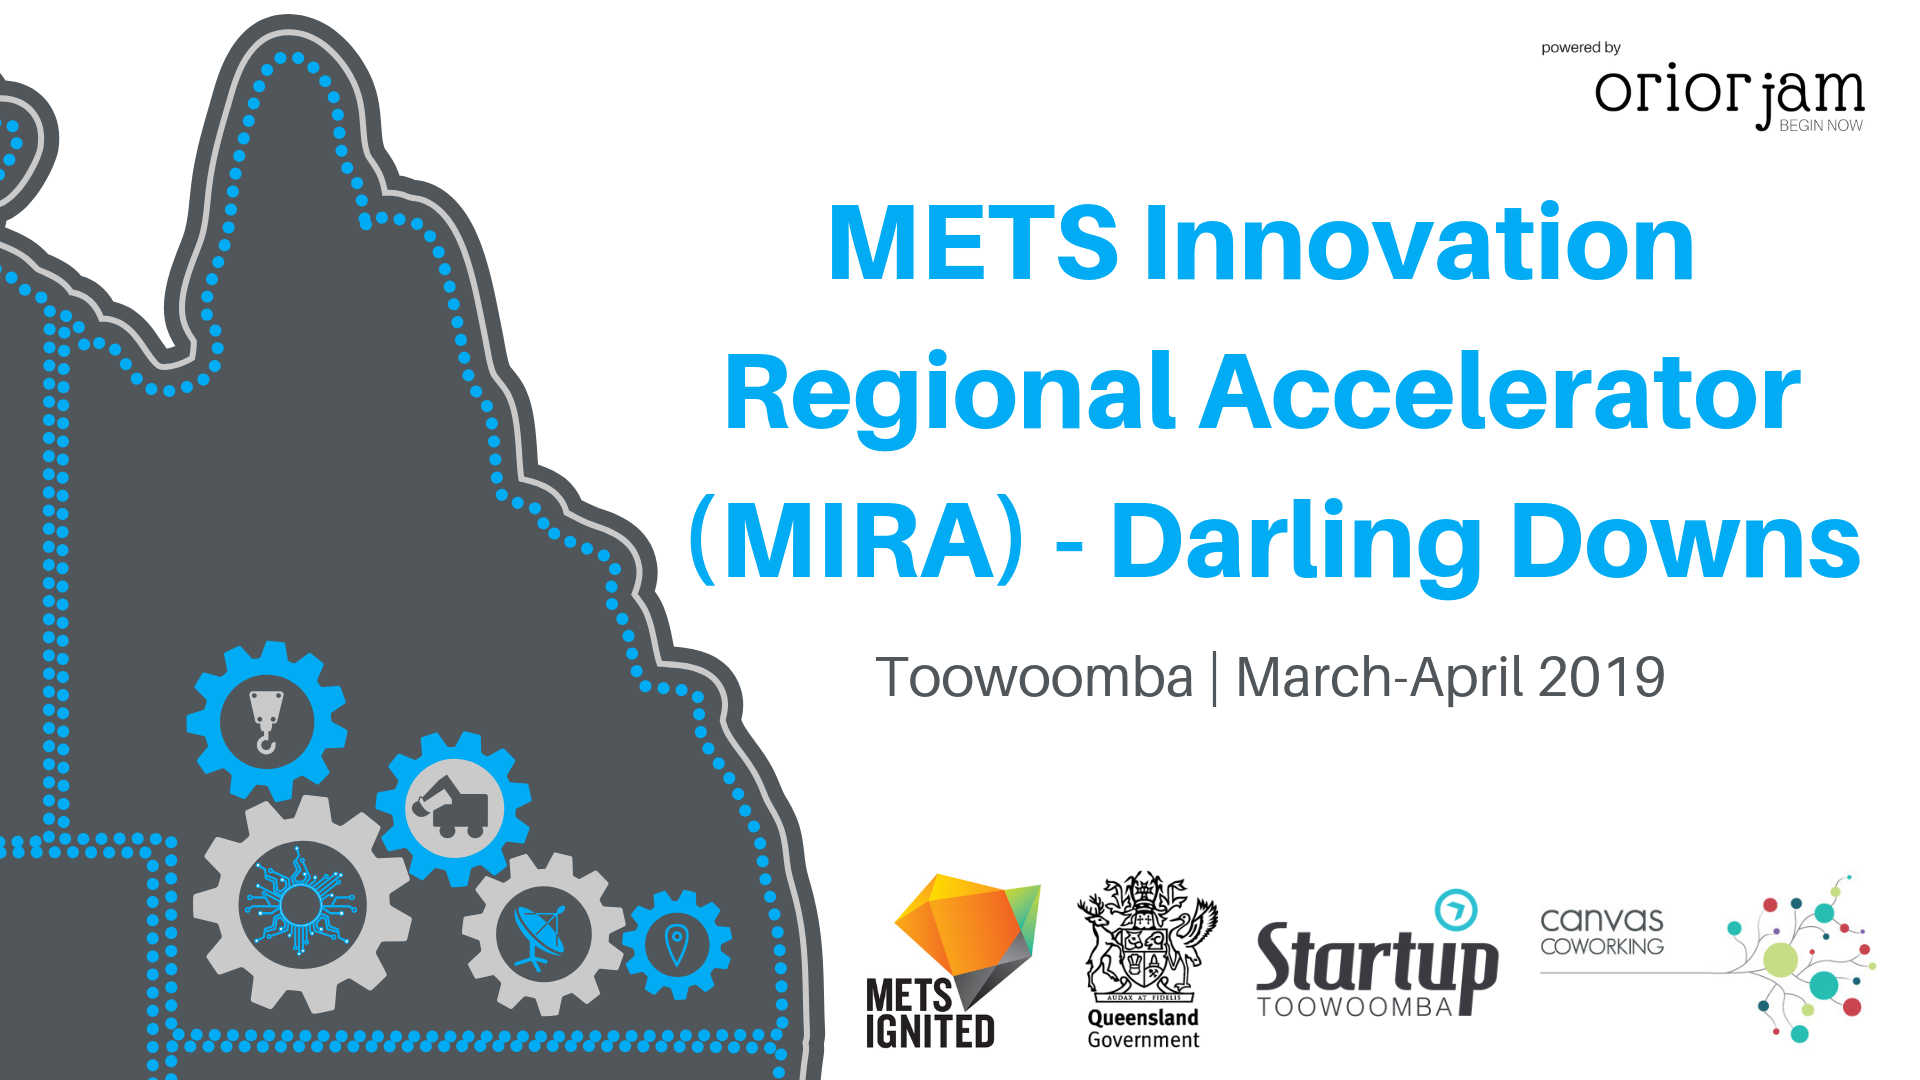 METS Innovation Regional Accelerator – Darling Downs